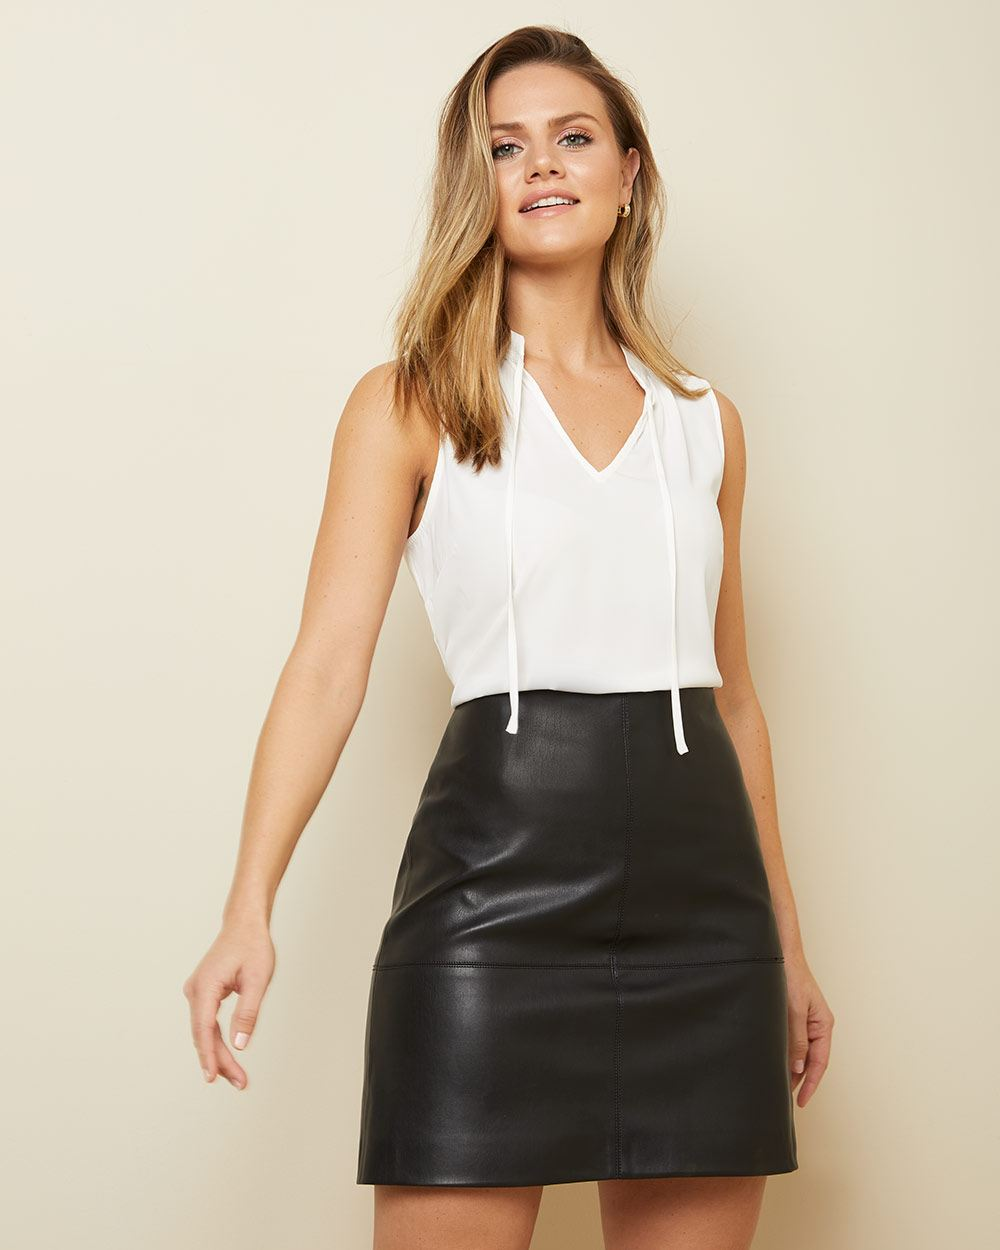 Sleeveless soft blouse with neck tie